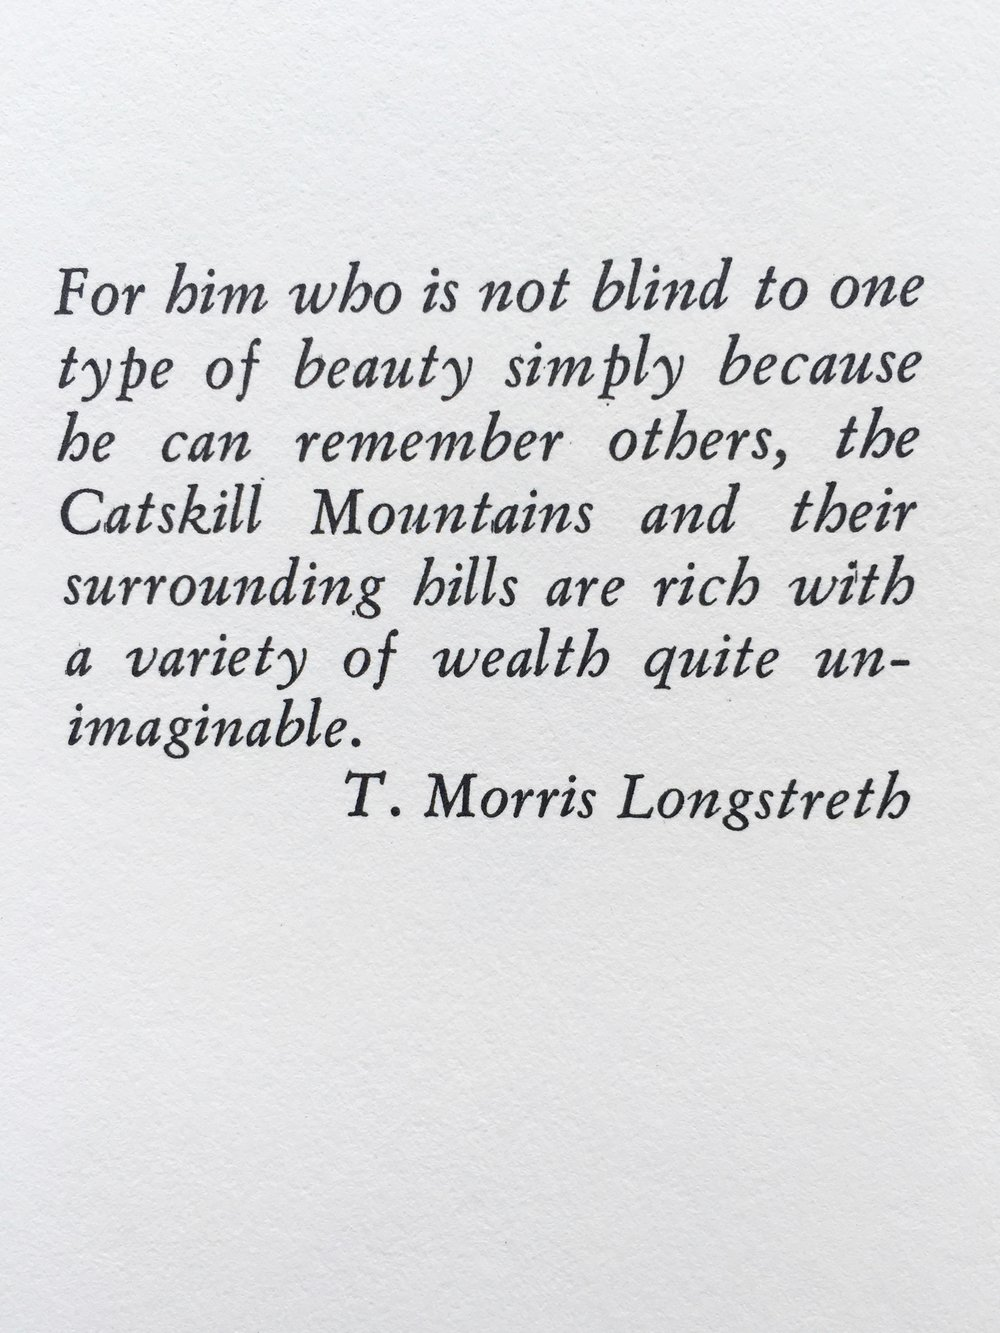 From Enjoying The Catskills by Arthur C. Mack